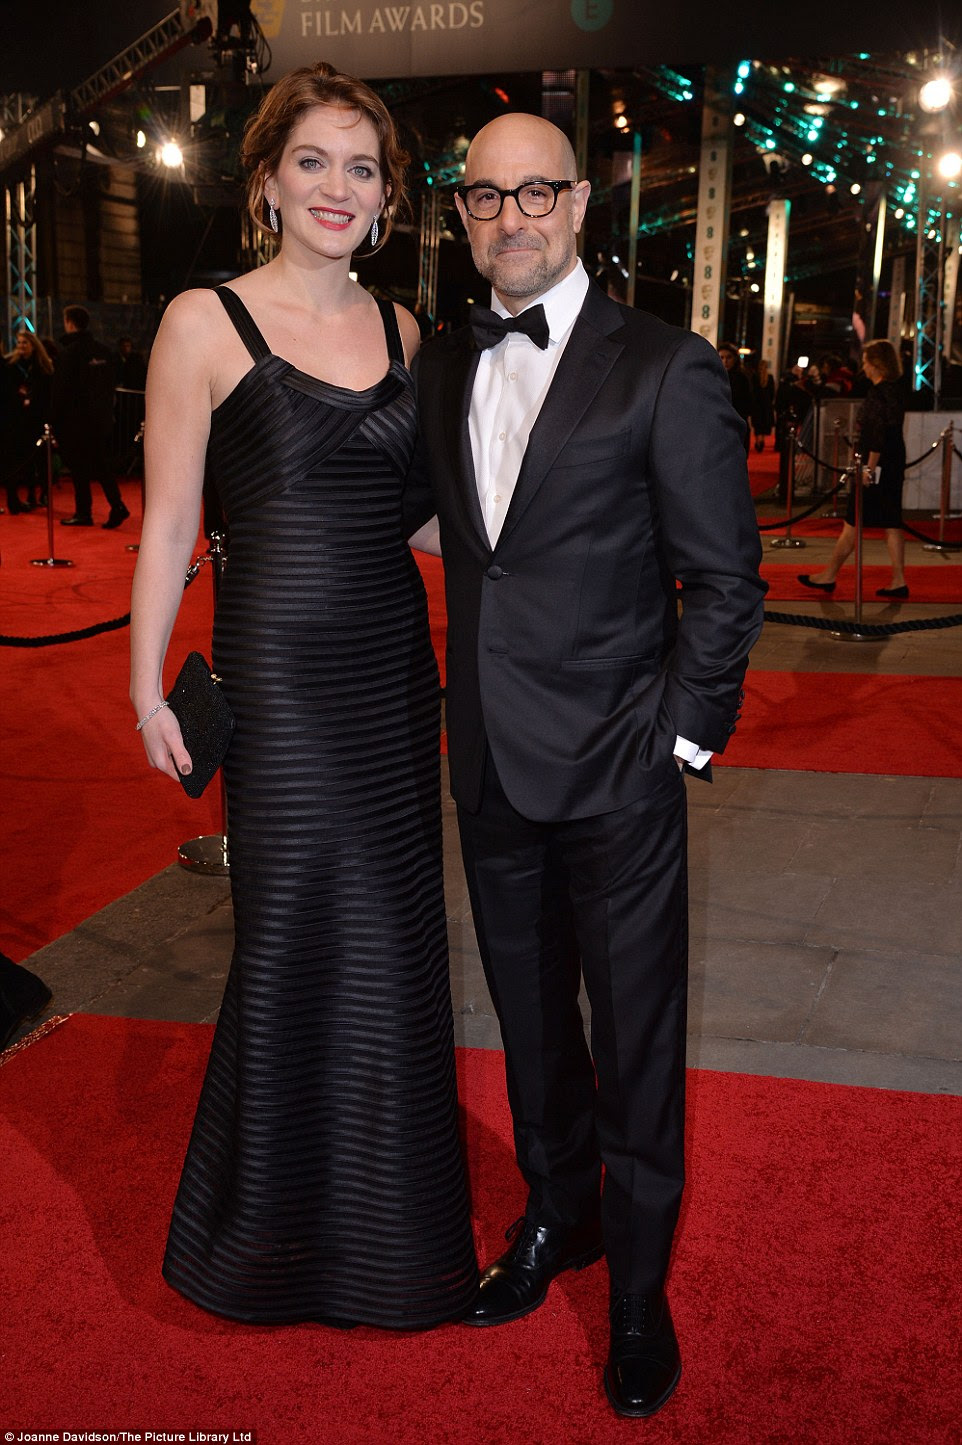 Sweet! Spotlight actor Stanley Tucci arrived on the arm of his lovely wife Felicity Blunt, the sister of actress Emily